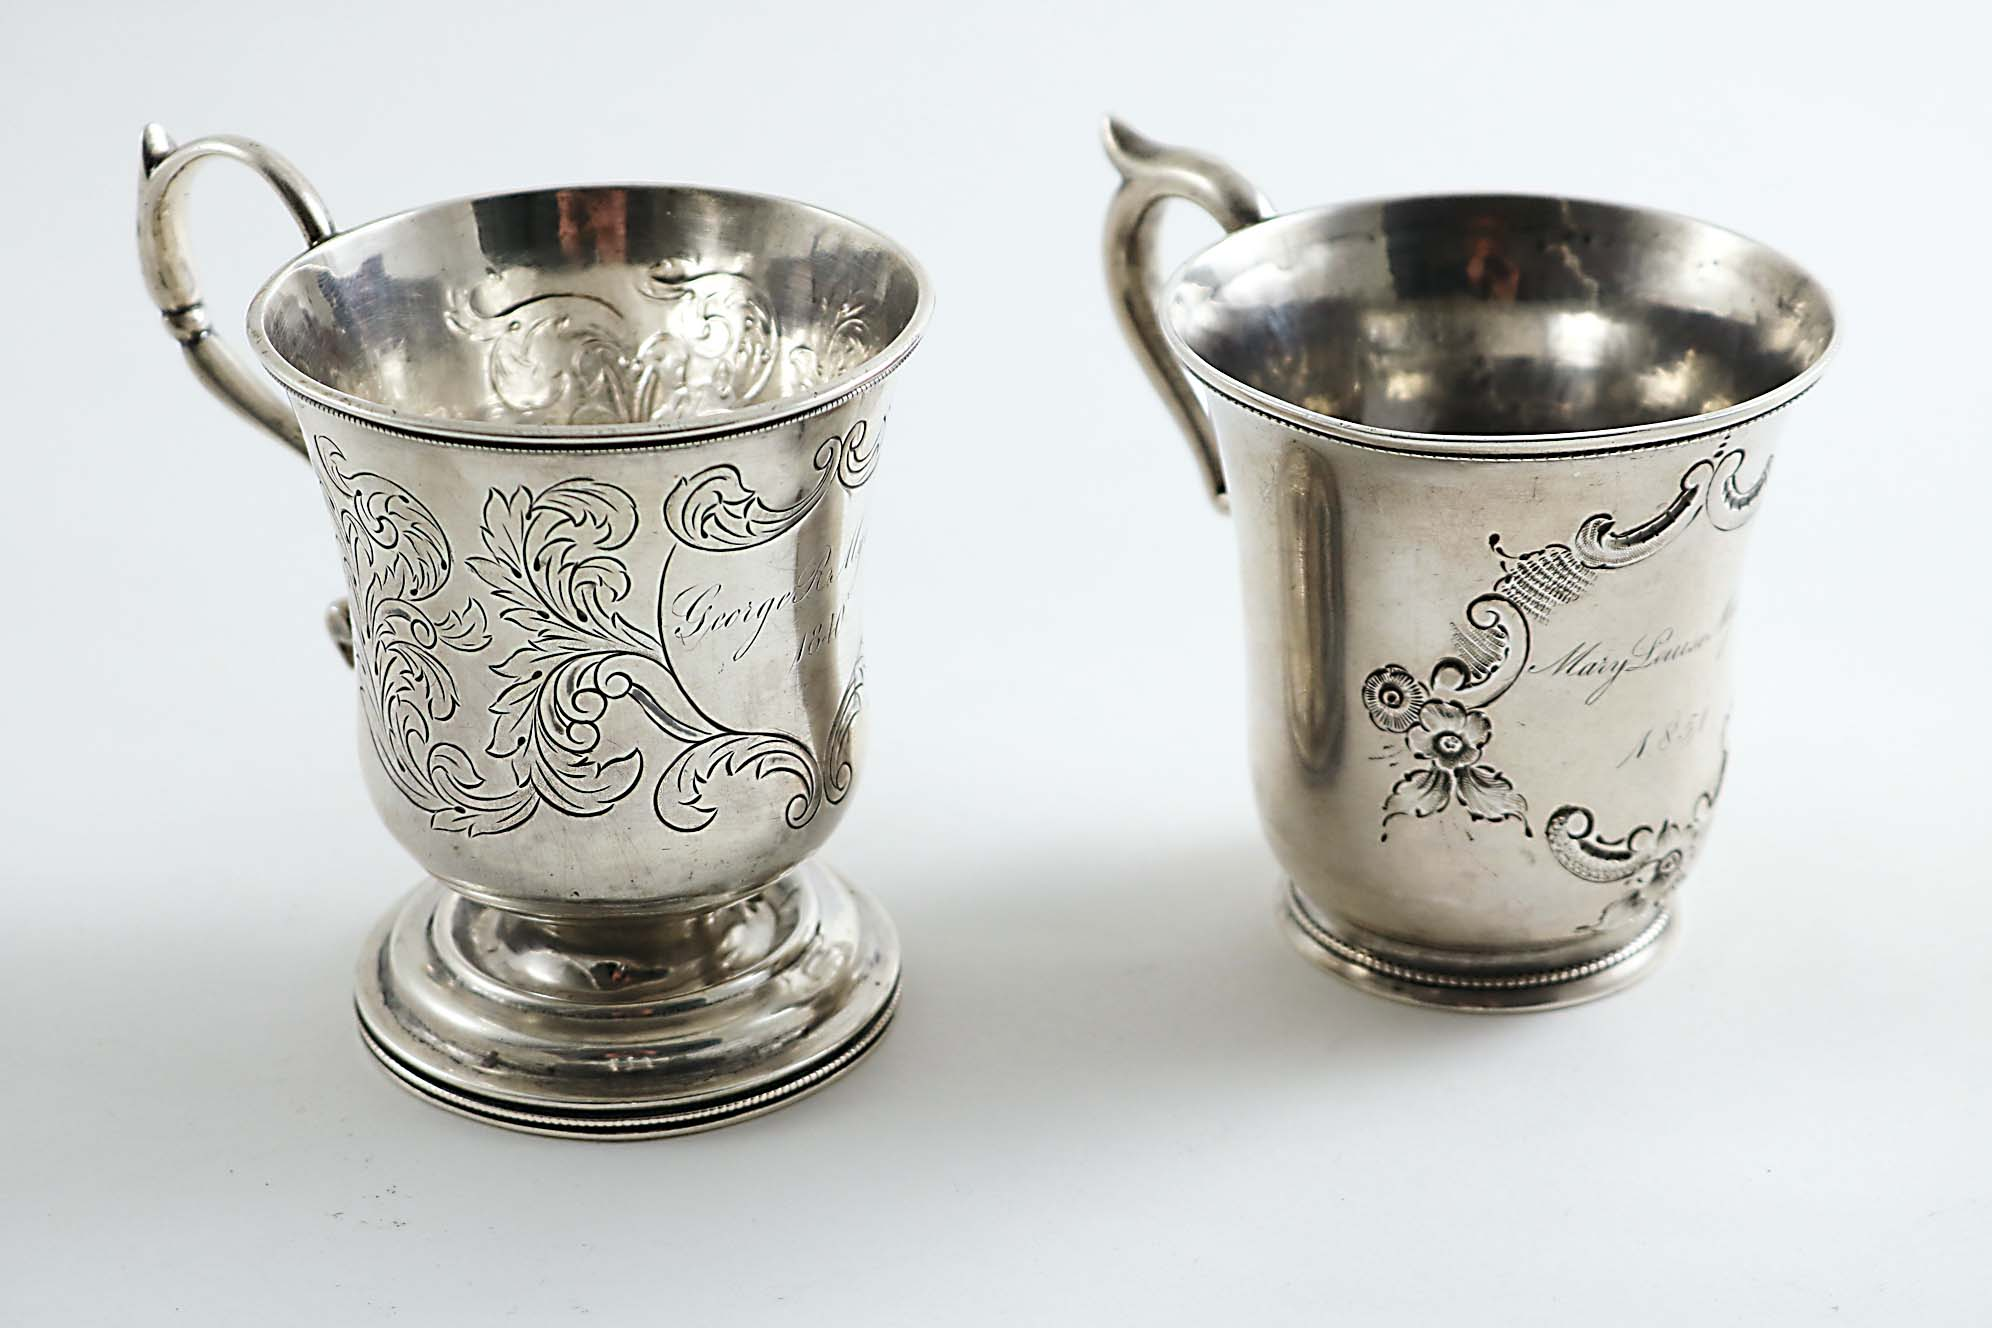 Lot 475 - TWO MID-19TH CENTURY AMERICAN CHRISTENING MUGS with campana-shaped bowls: one with a circular